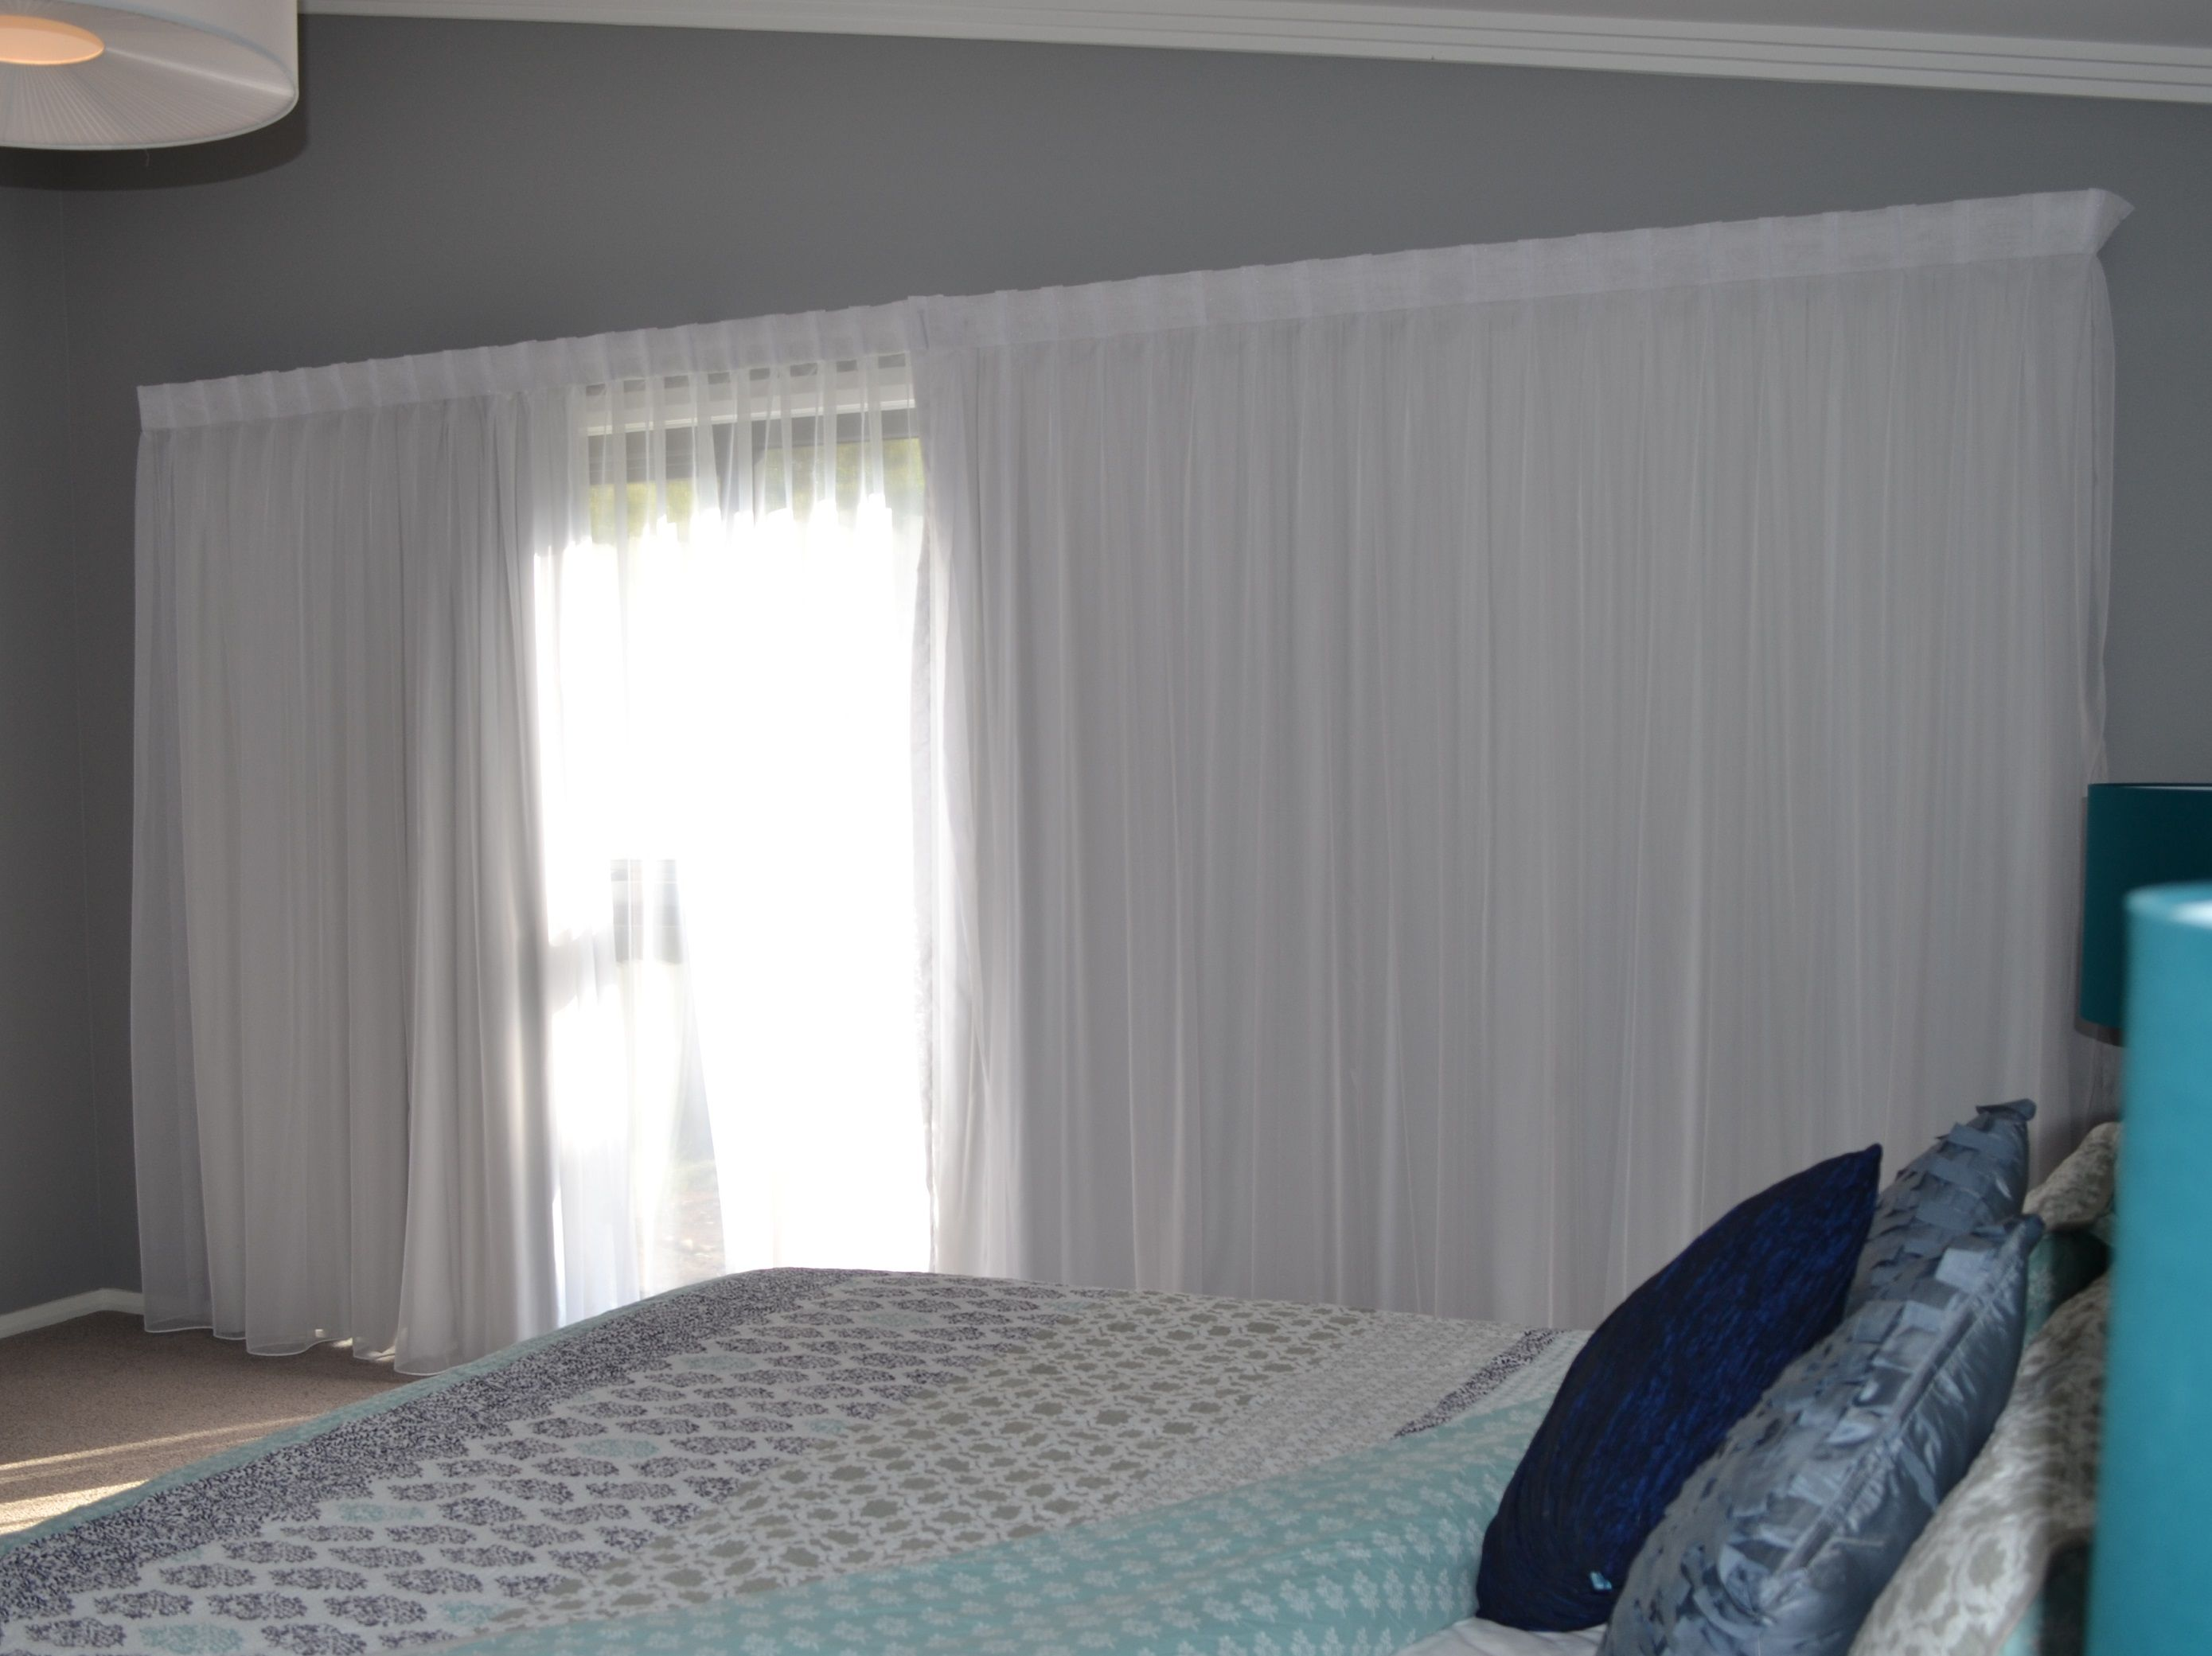 Lined Bedroom Curtains Double Track With A Sheer Curtain At The Front With A Lining At